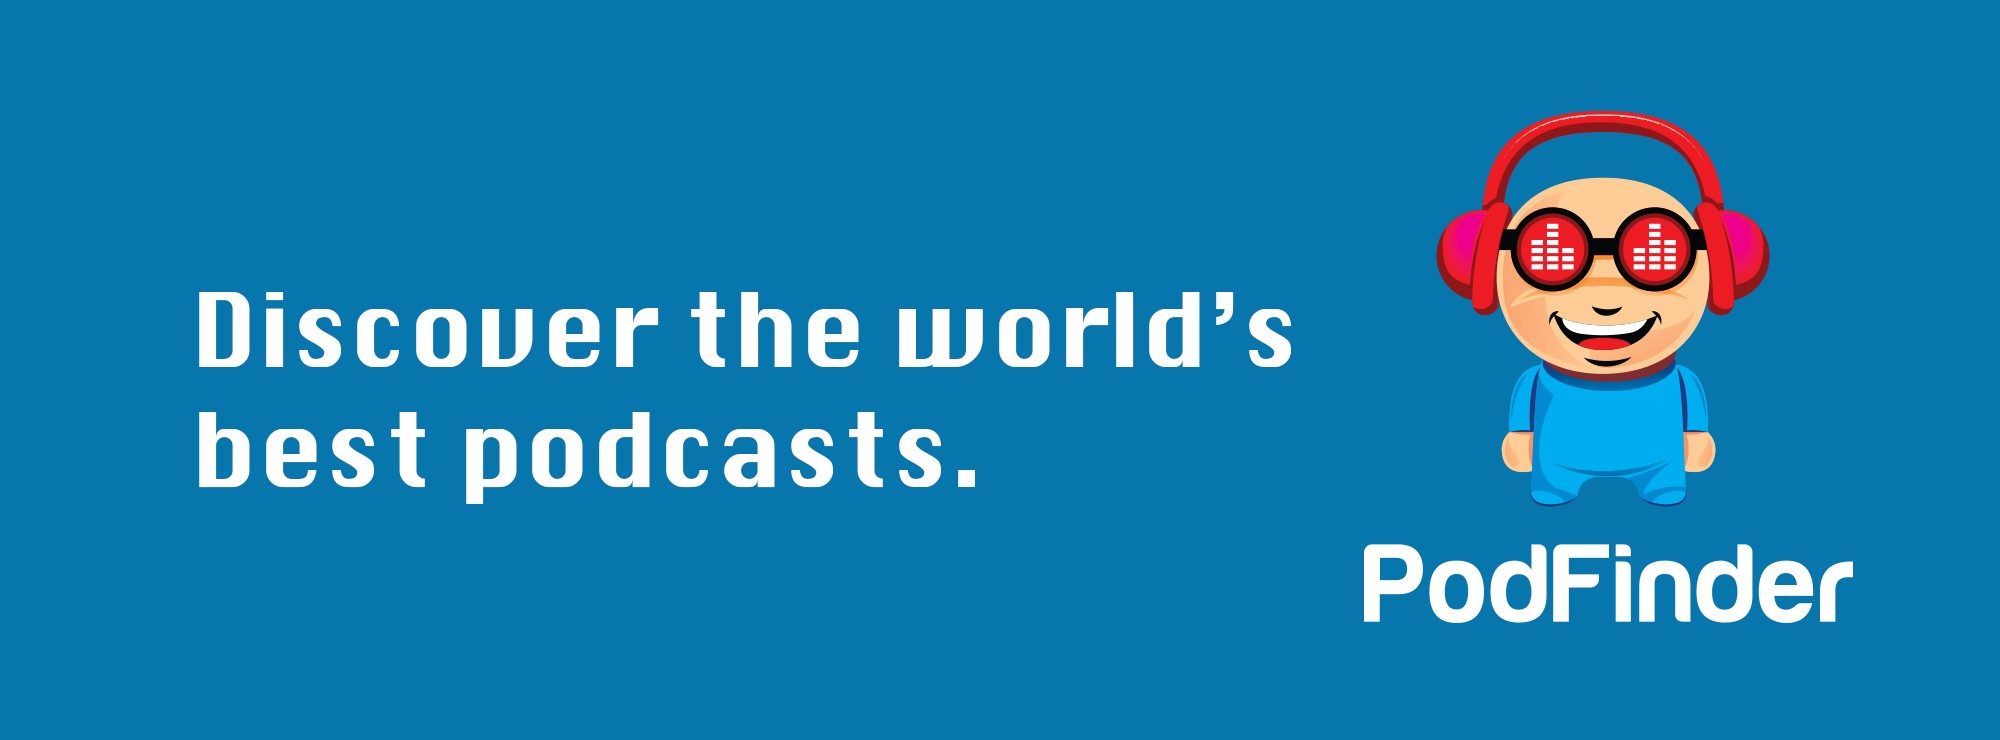 Introducing PodFinder—A new way to discover great podcasts